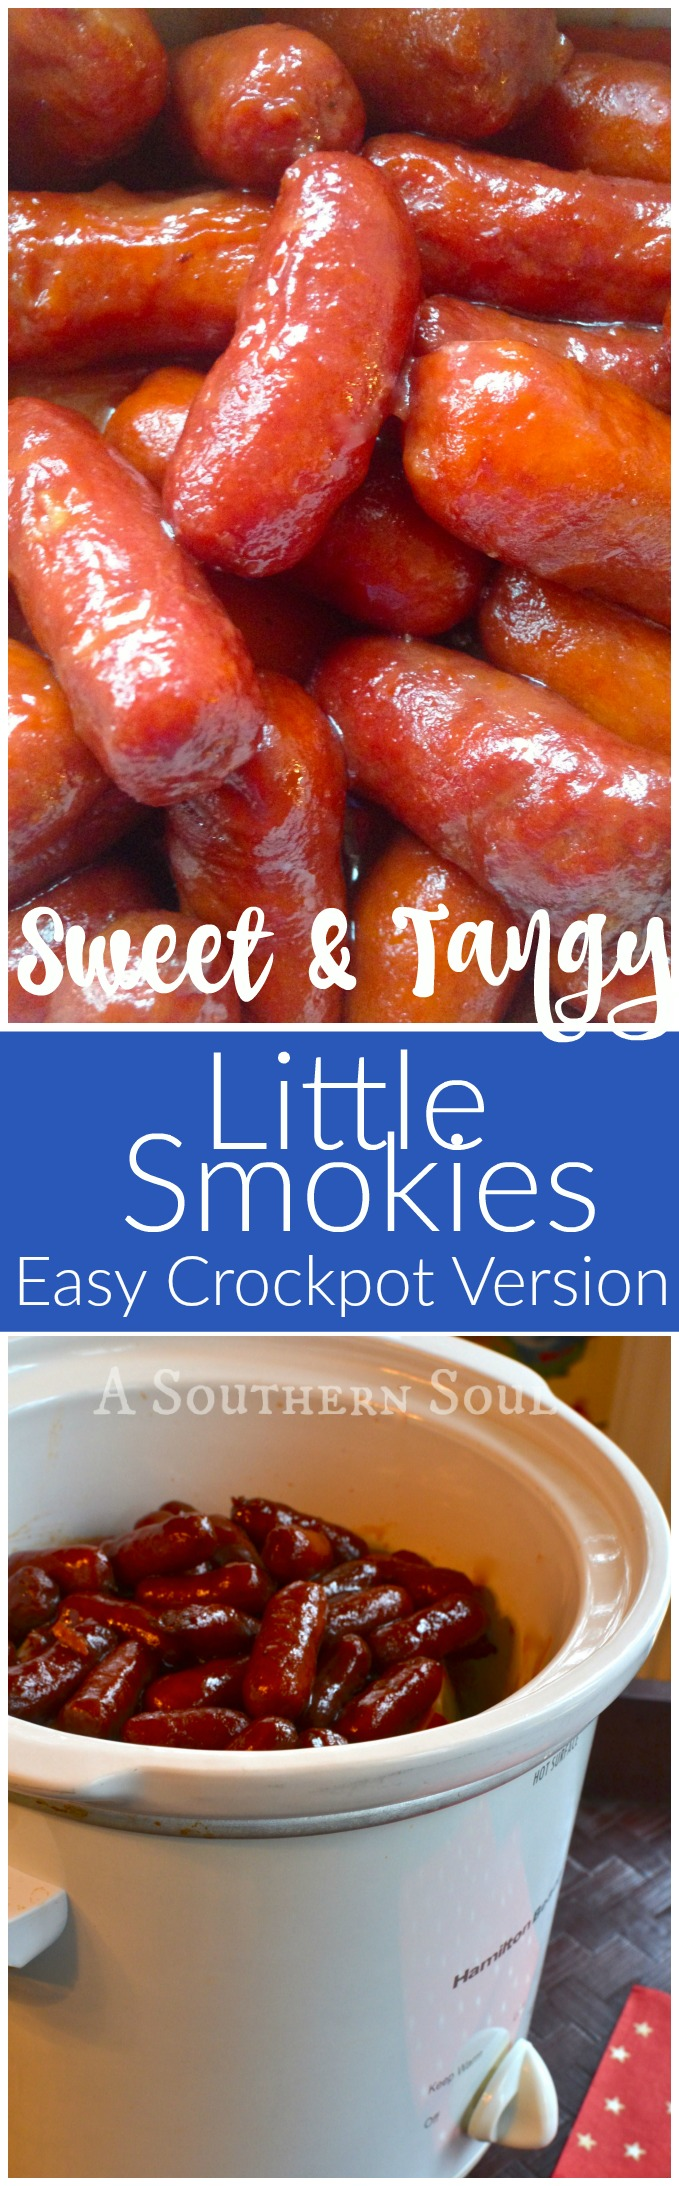 Little smokies made in the crock pot